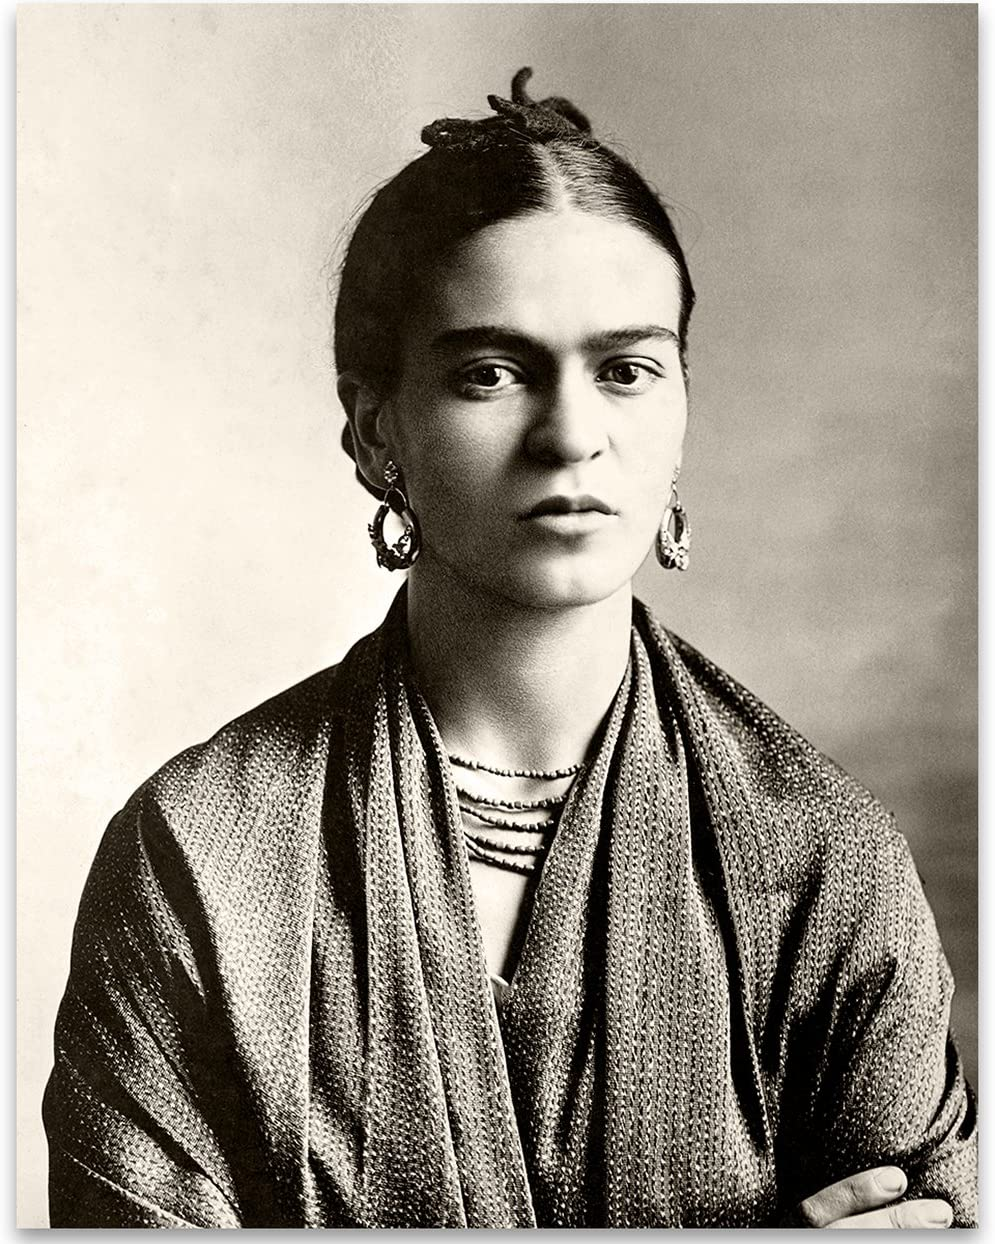 Frida Kahlo Wrap Photo - 11x14 Unframed Print - Perfect Vintage House Decor Under $15